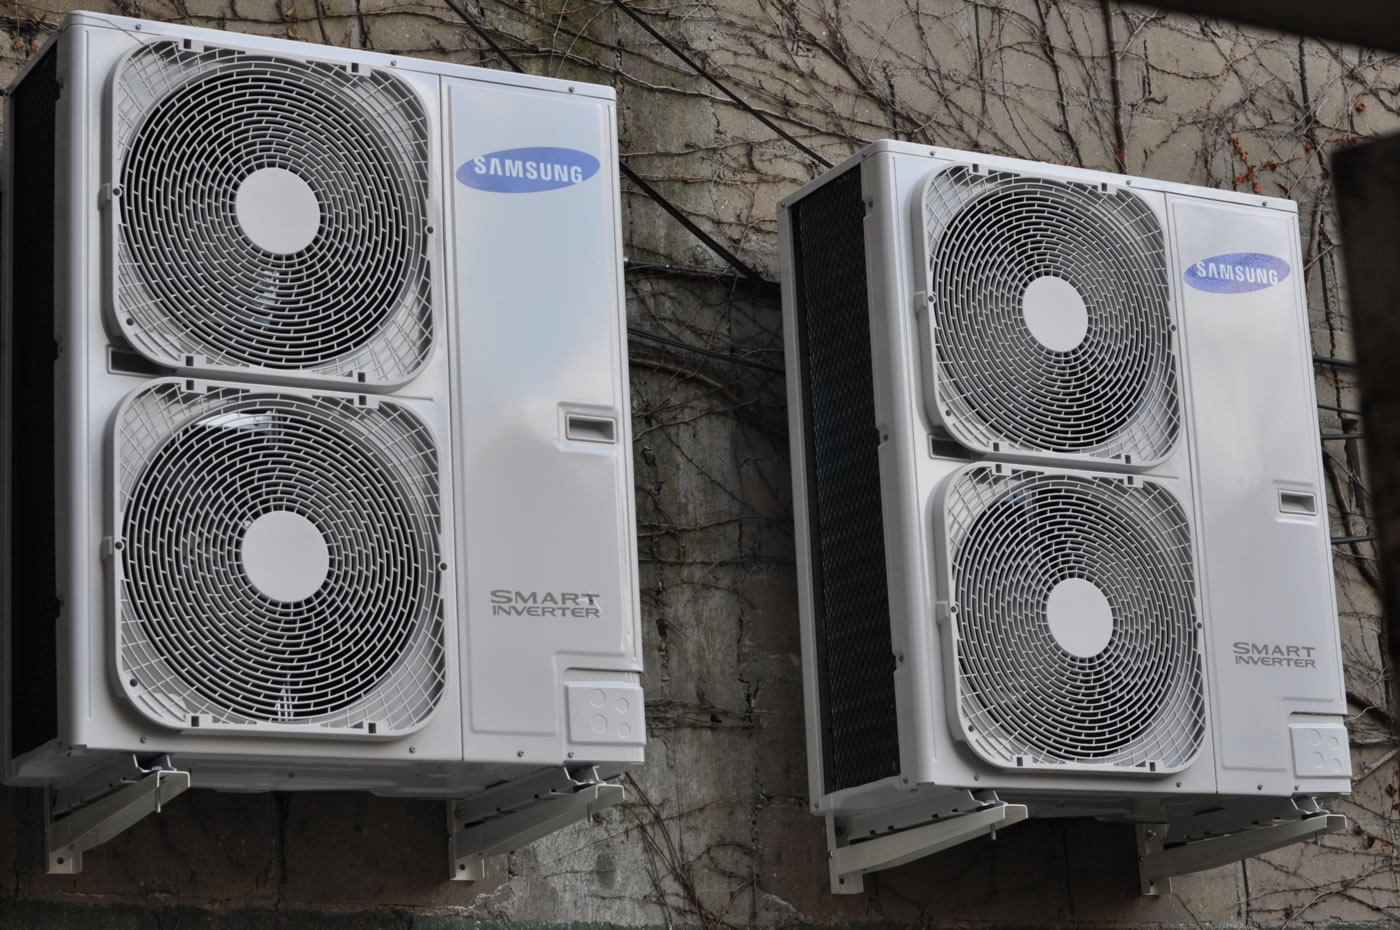 #595149 Daikin Mini Split FTXS15LVJU SEER 20.6 EER 14.4 Ductless  Highest Rated 13926 Samsung Split Air Conditioner img with 1400x930 px on helpvideos.info - Air Conditioners, Air Coolers and more